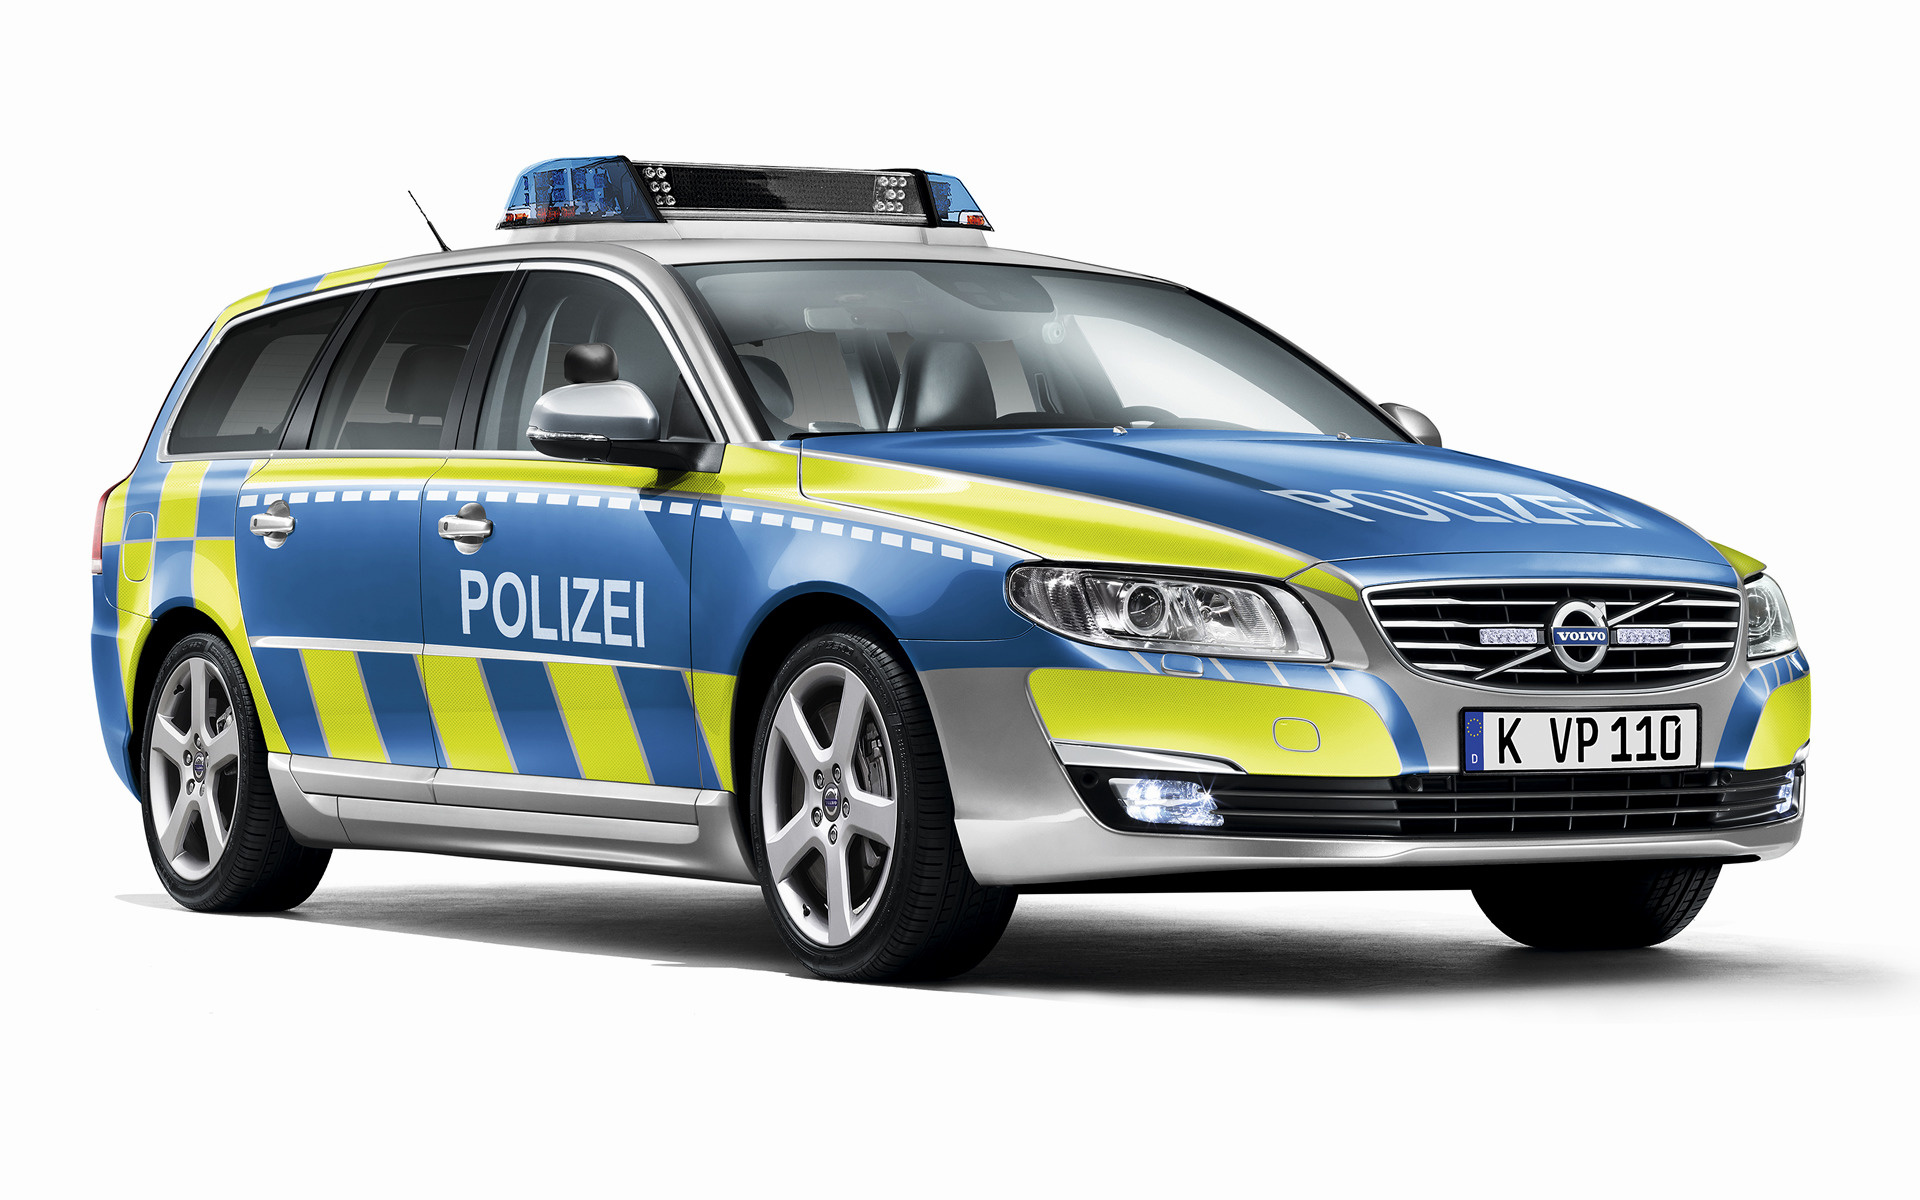 Volvo V70 Polizei 2014 Wallpapers And Hd Images Car Pixel